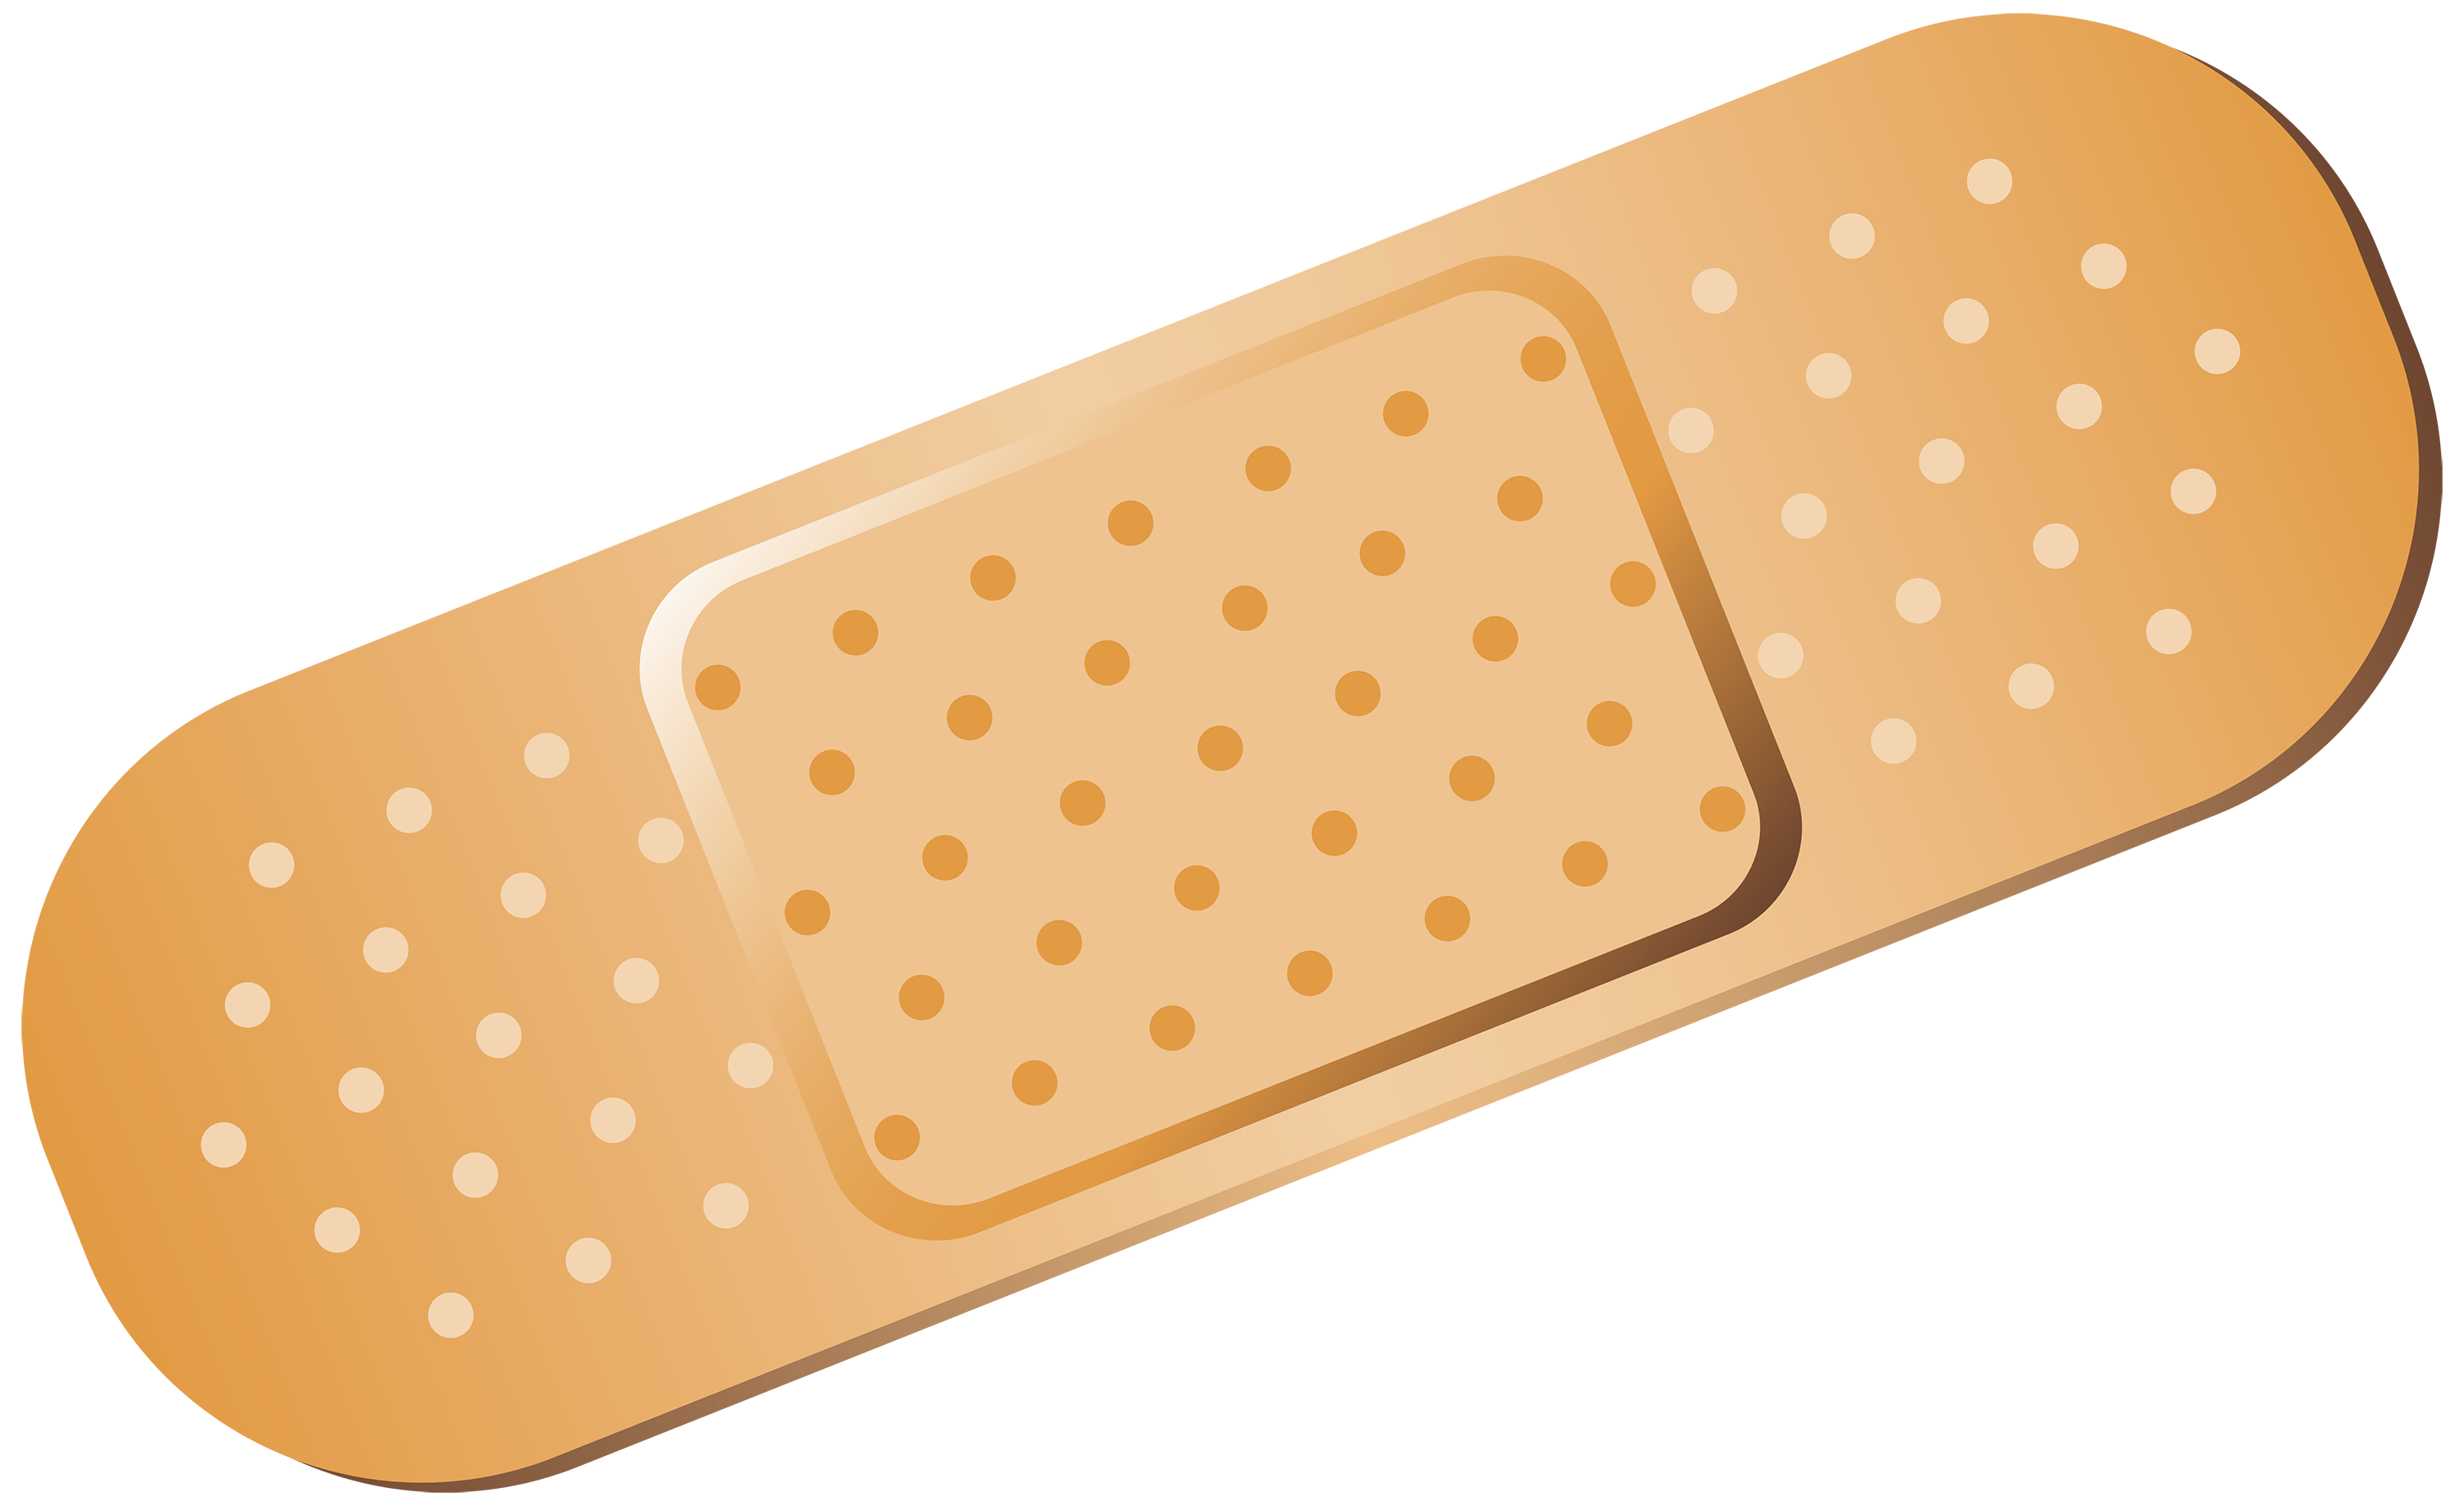 Bandage Strip PNG Clipart.